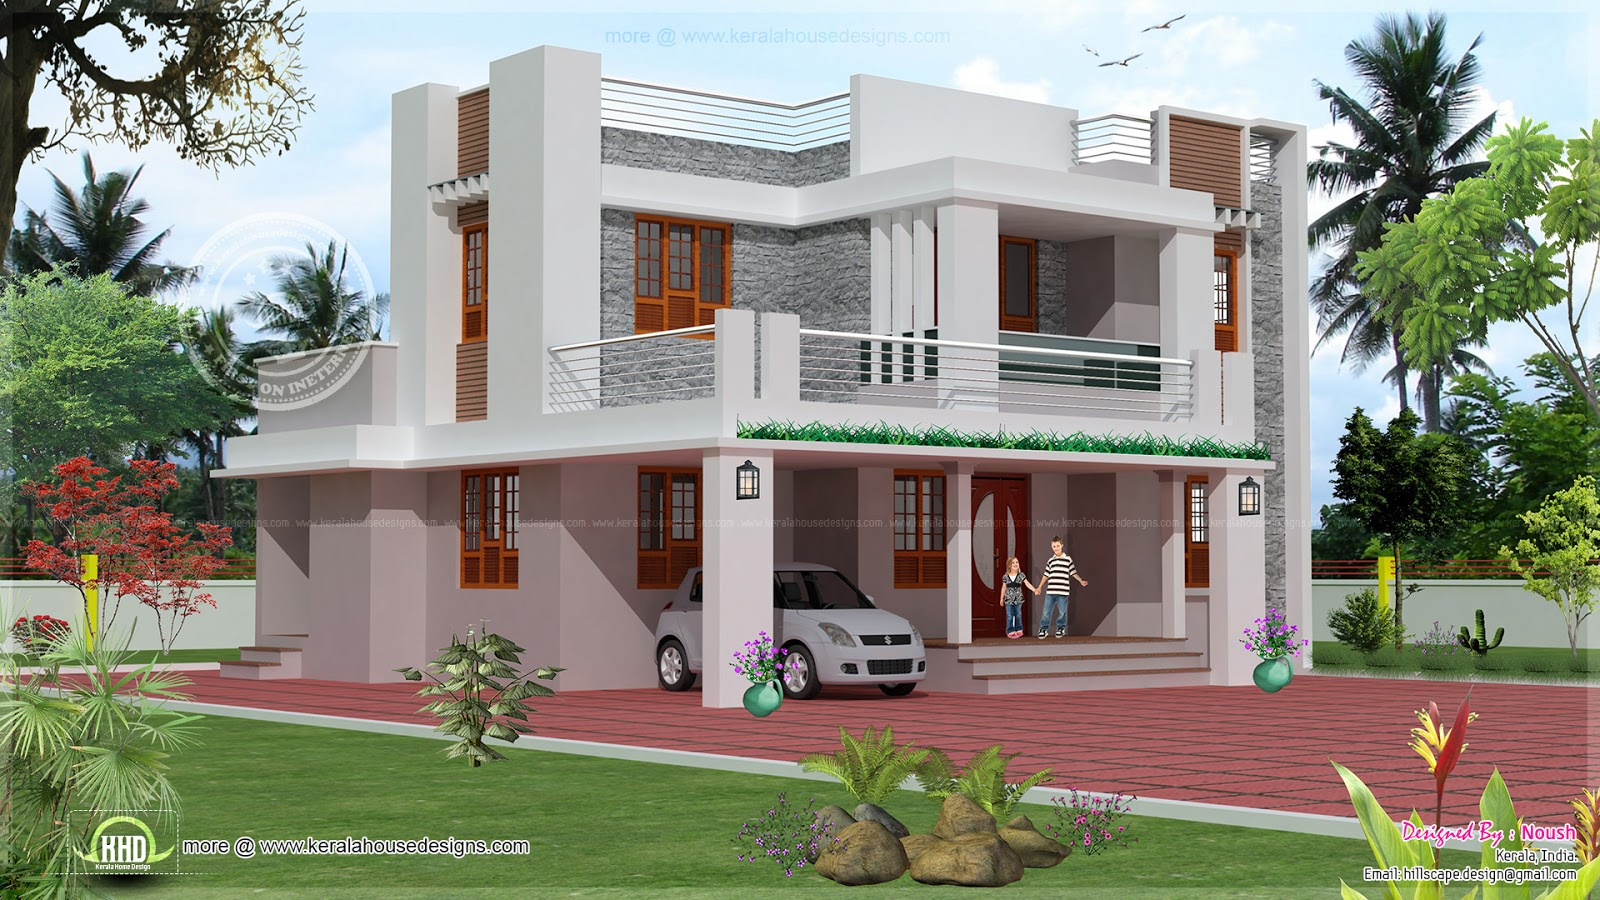 4 bedroom 2 story house exterior design home kerala plans ForExterior Design Of 2 Storey House